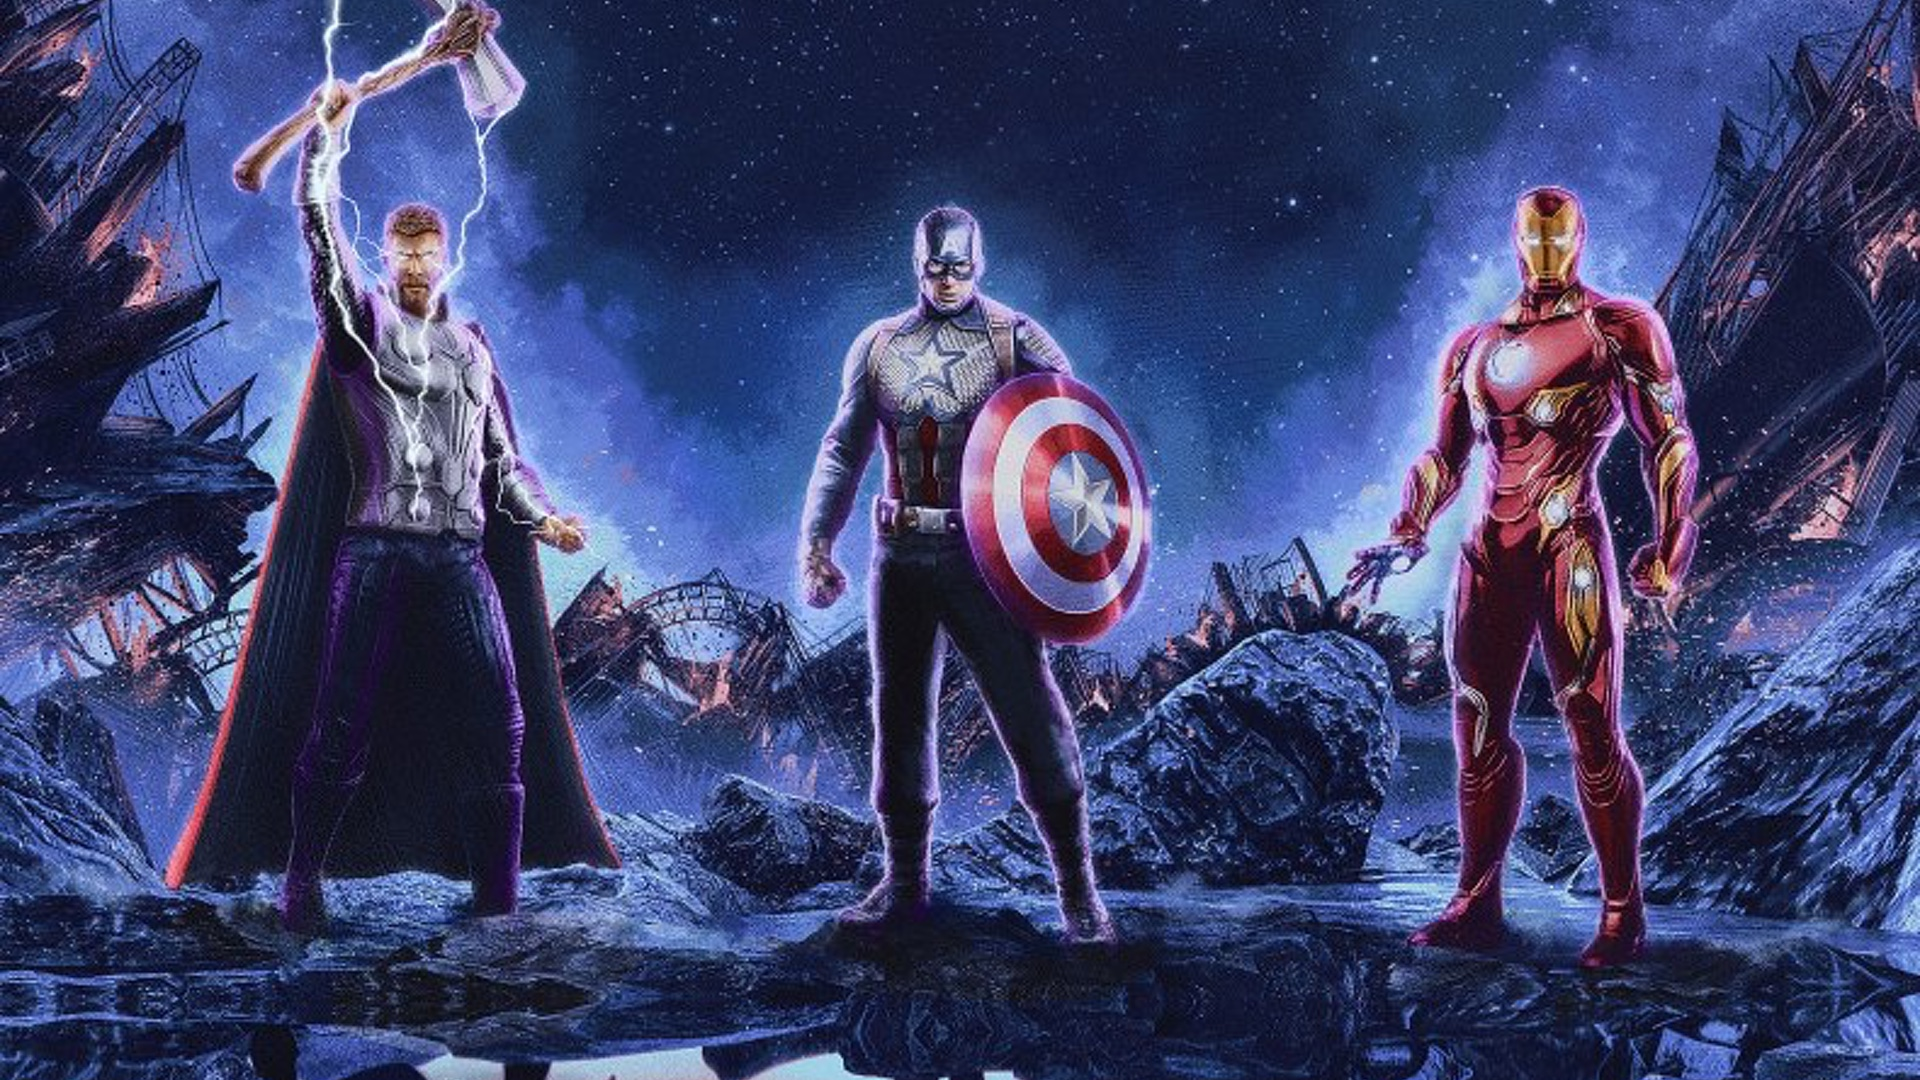 New Avengers Endgame Poster Reflects The Heroes Pasts While